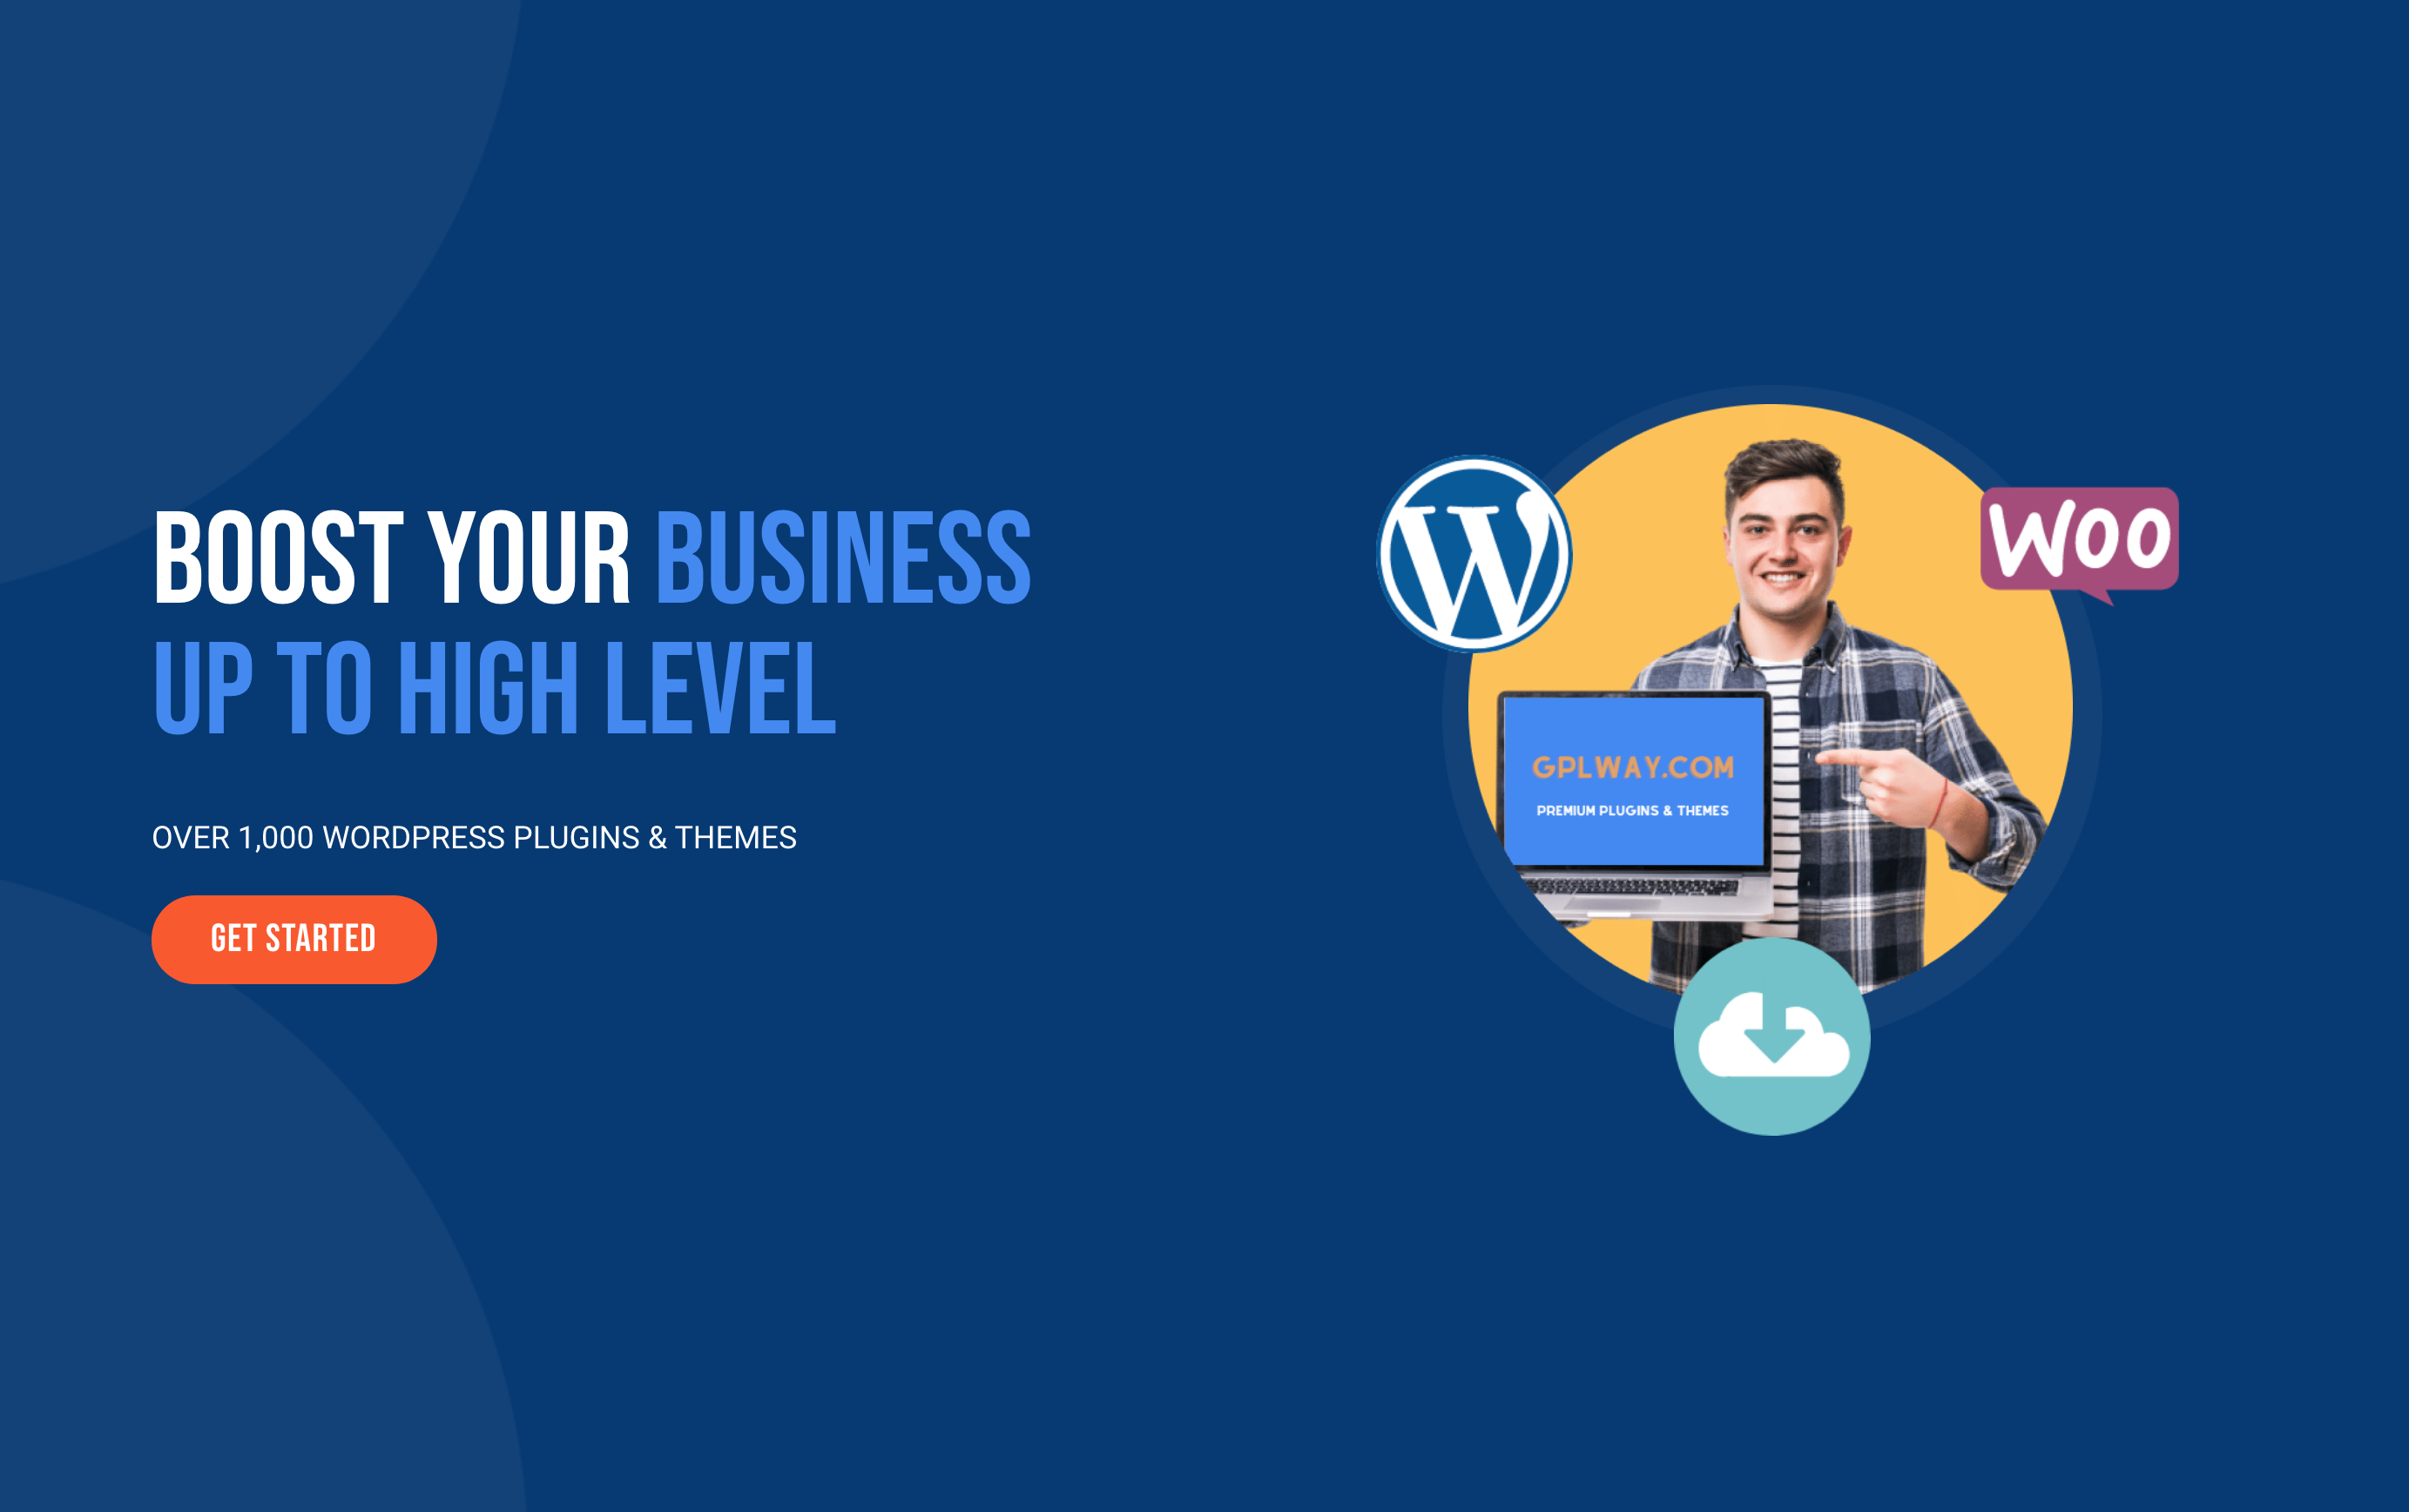 GPLWay Offers WordPress Themes And Plugins To Help Small Business Growth